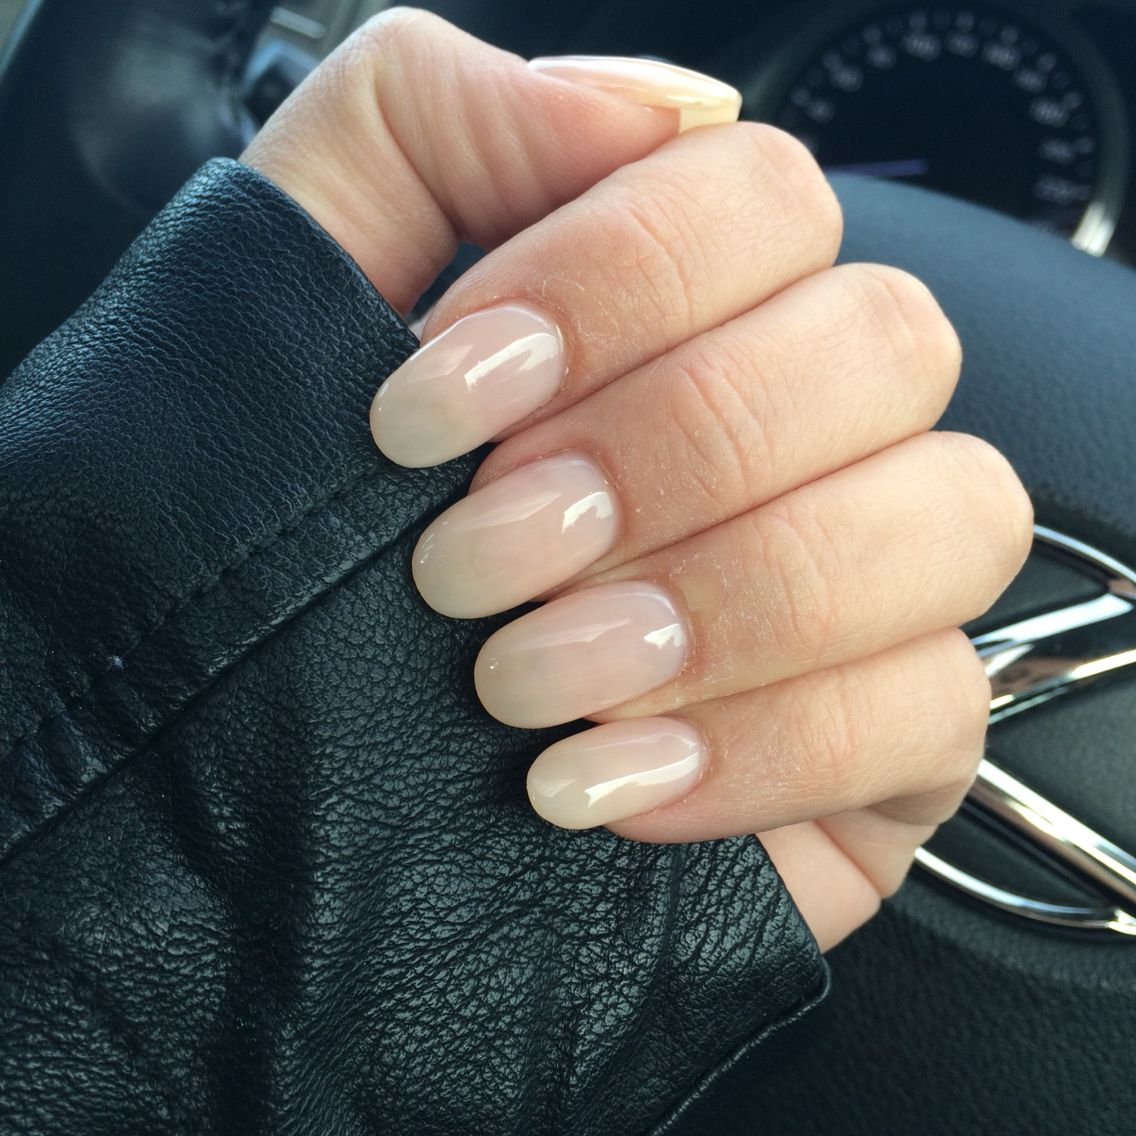 Nude, natural, round, oval, acrylic, gel, shellac, nails | nails ...